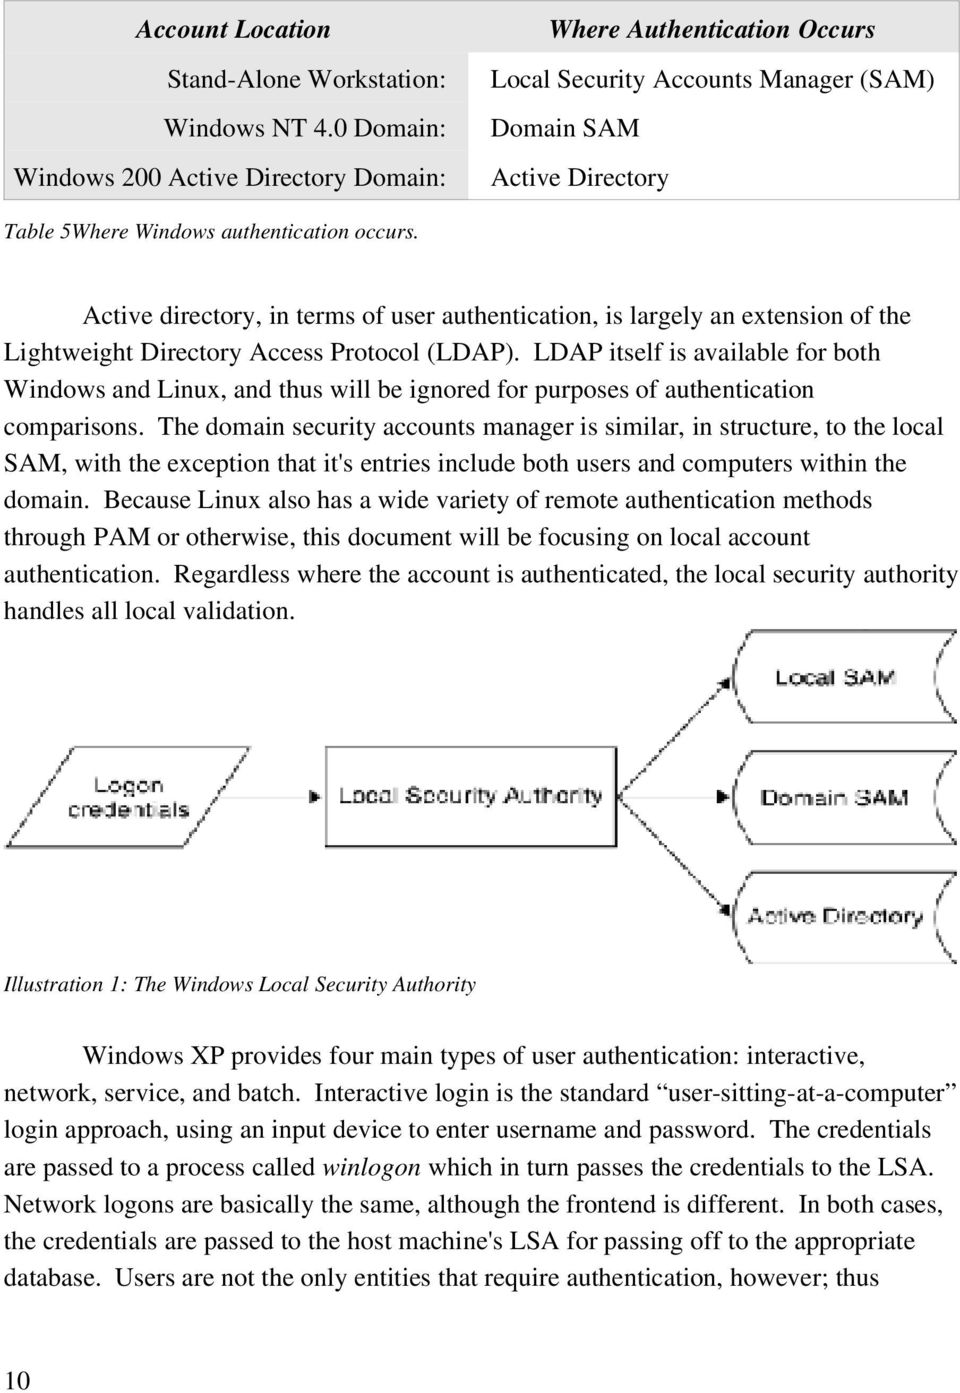 Active directory, in terms of user authentication, is largely an extension of the Lightweight Directory Access Protocol (LDAP).